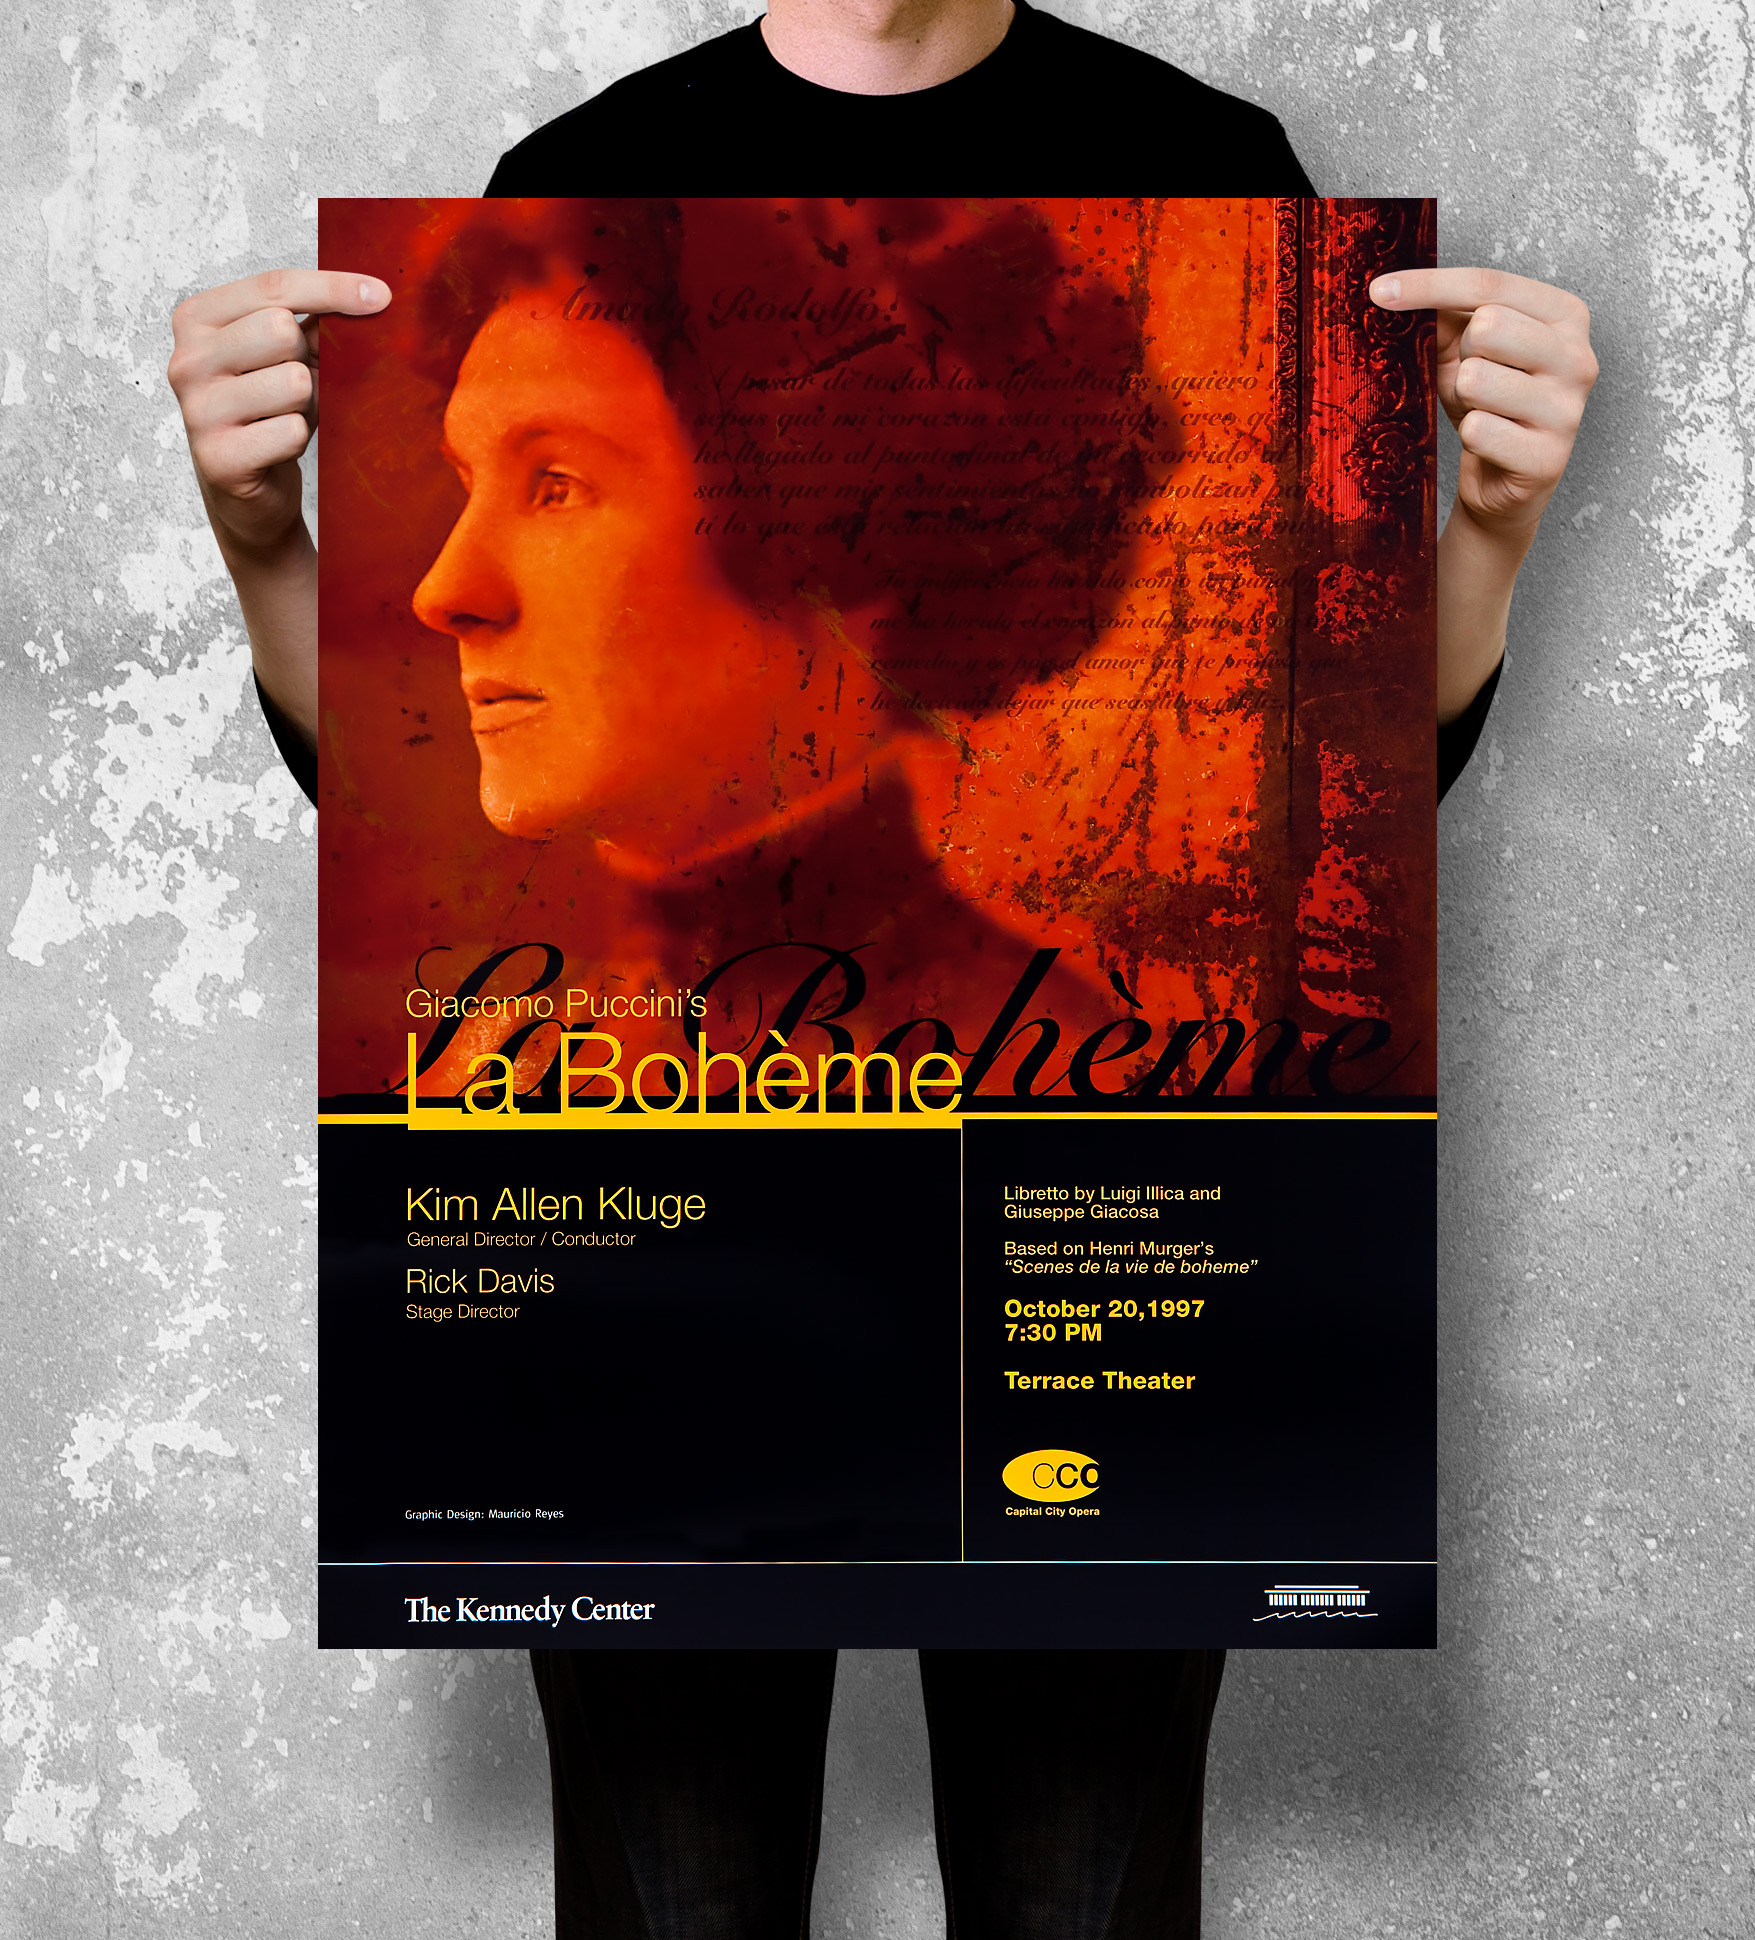 Kennedy Center poster design